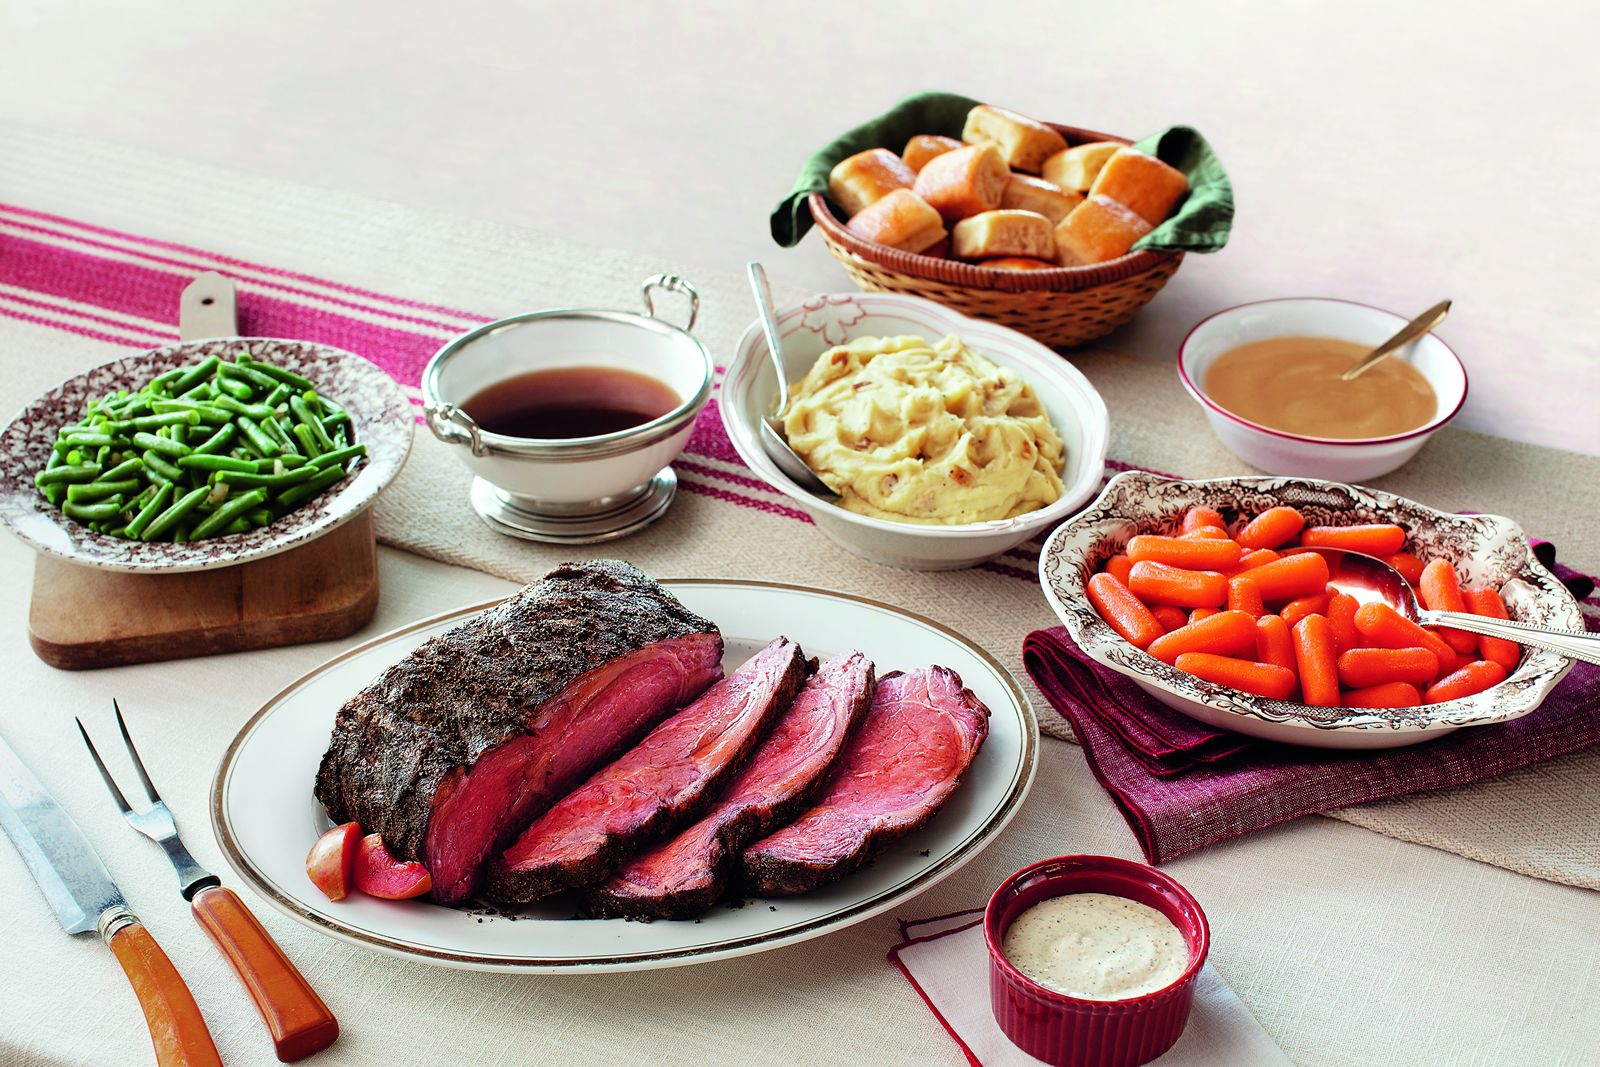 Cracker Barrel Old Country Store Prime Rib Heat n' Serve Family Dinner